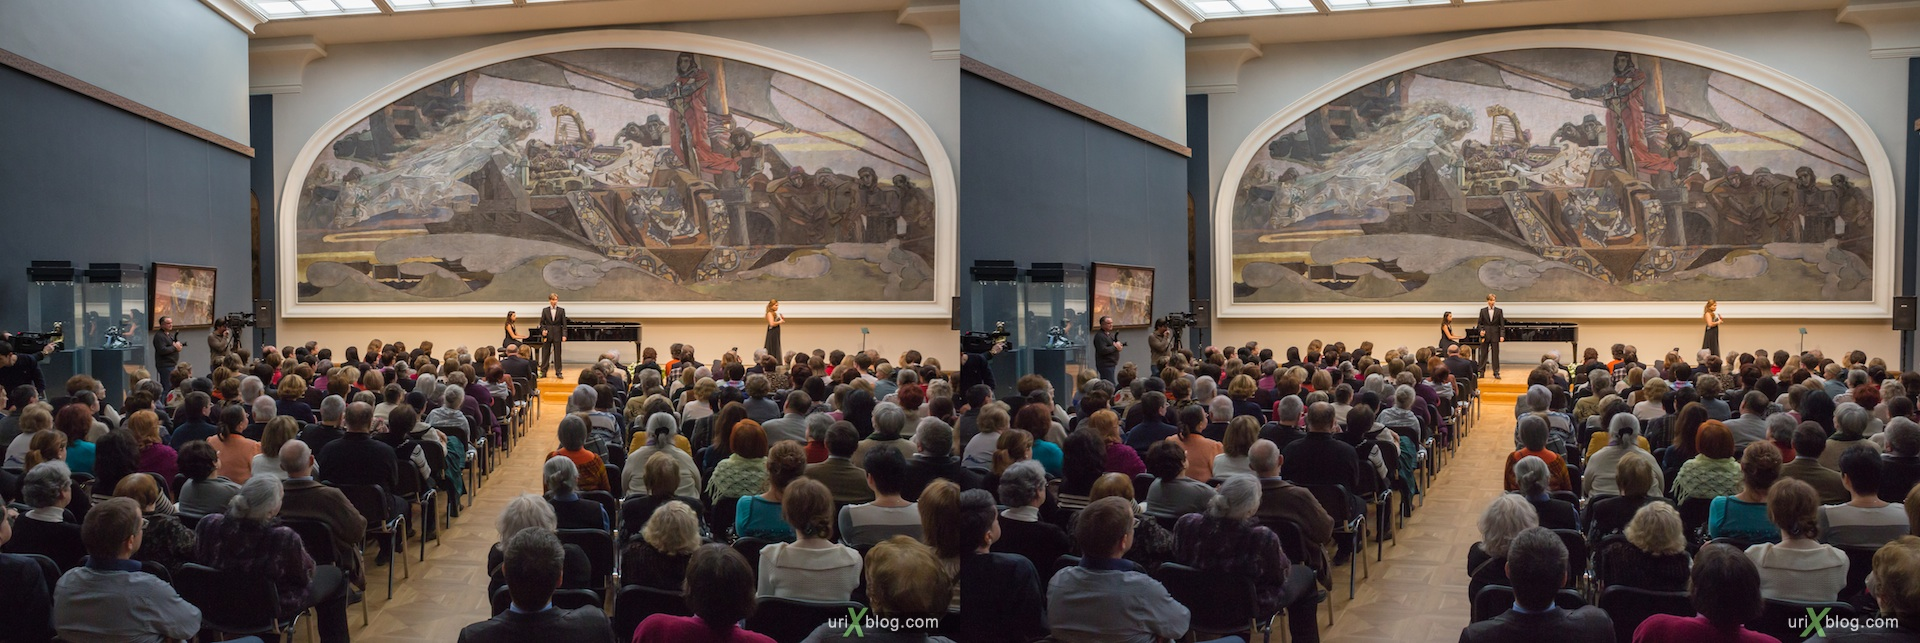 2012, Vrubel Hall, Tretyakov Gallery, Moscow, Russia, 3D, stereo pair, cross-eyed, crossview, cross view stereo pair